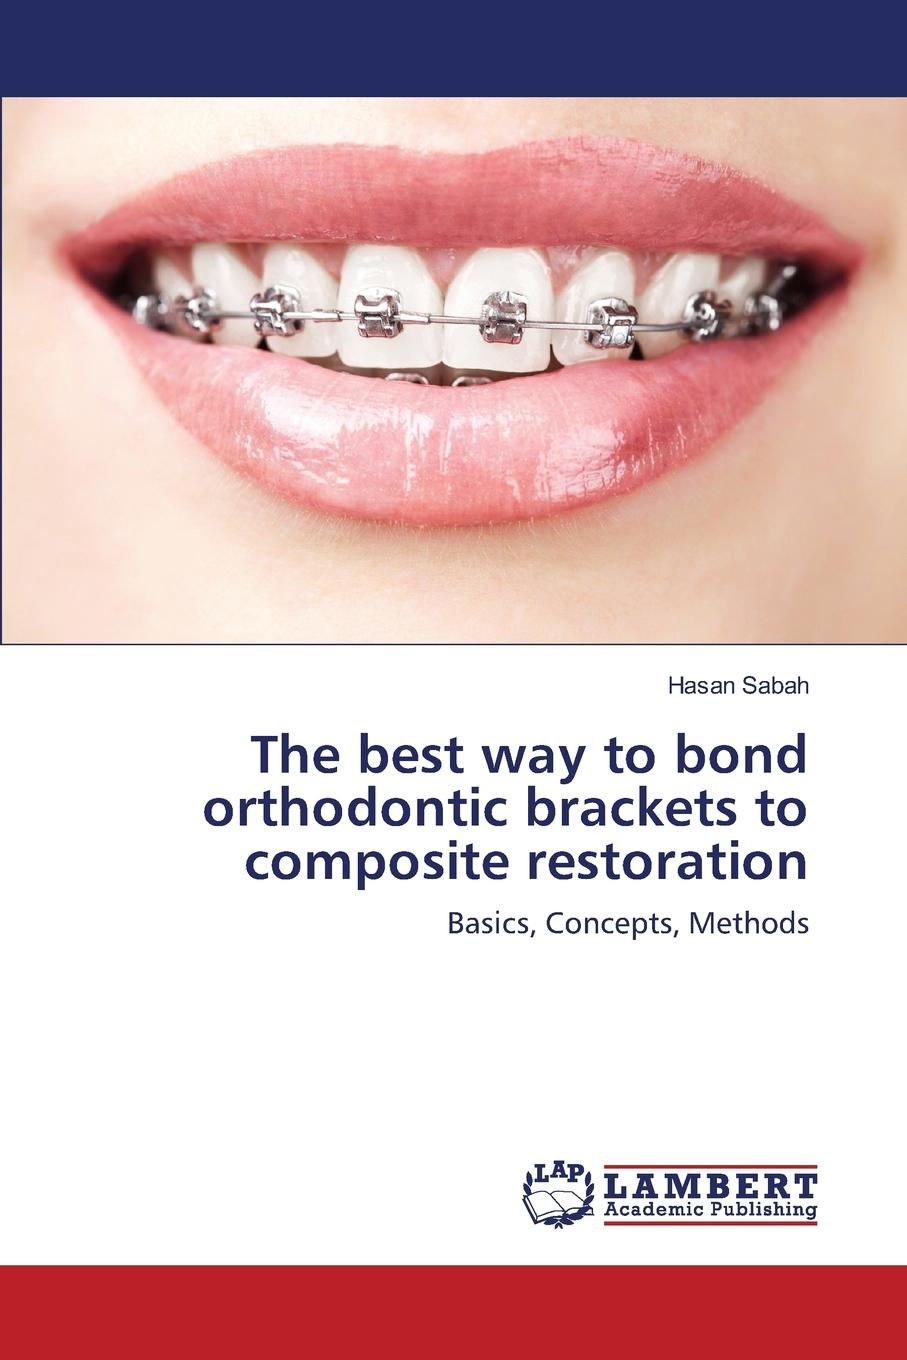 Sabah Hasan The best way to bond orthodontic brackets to composite restoration